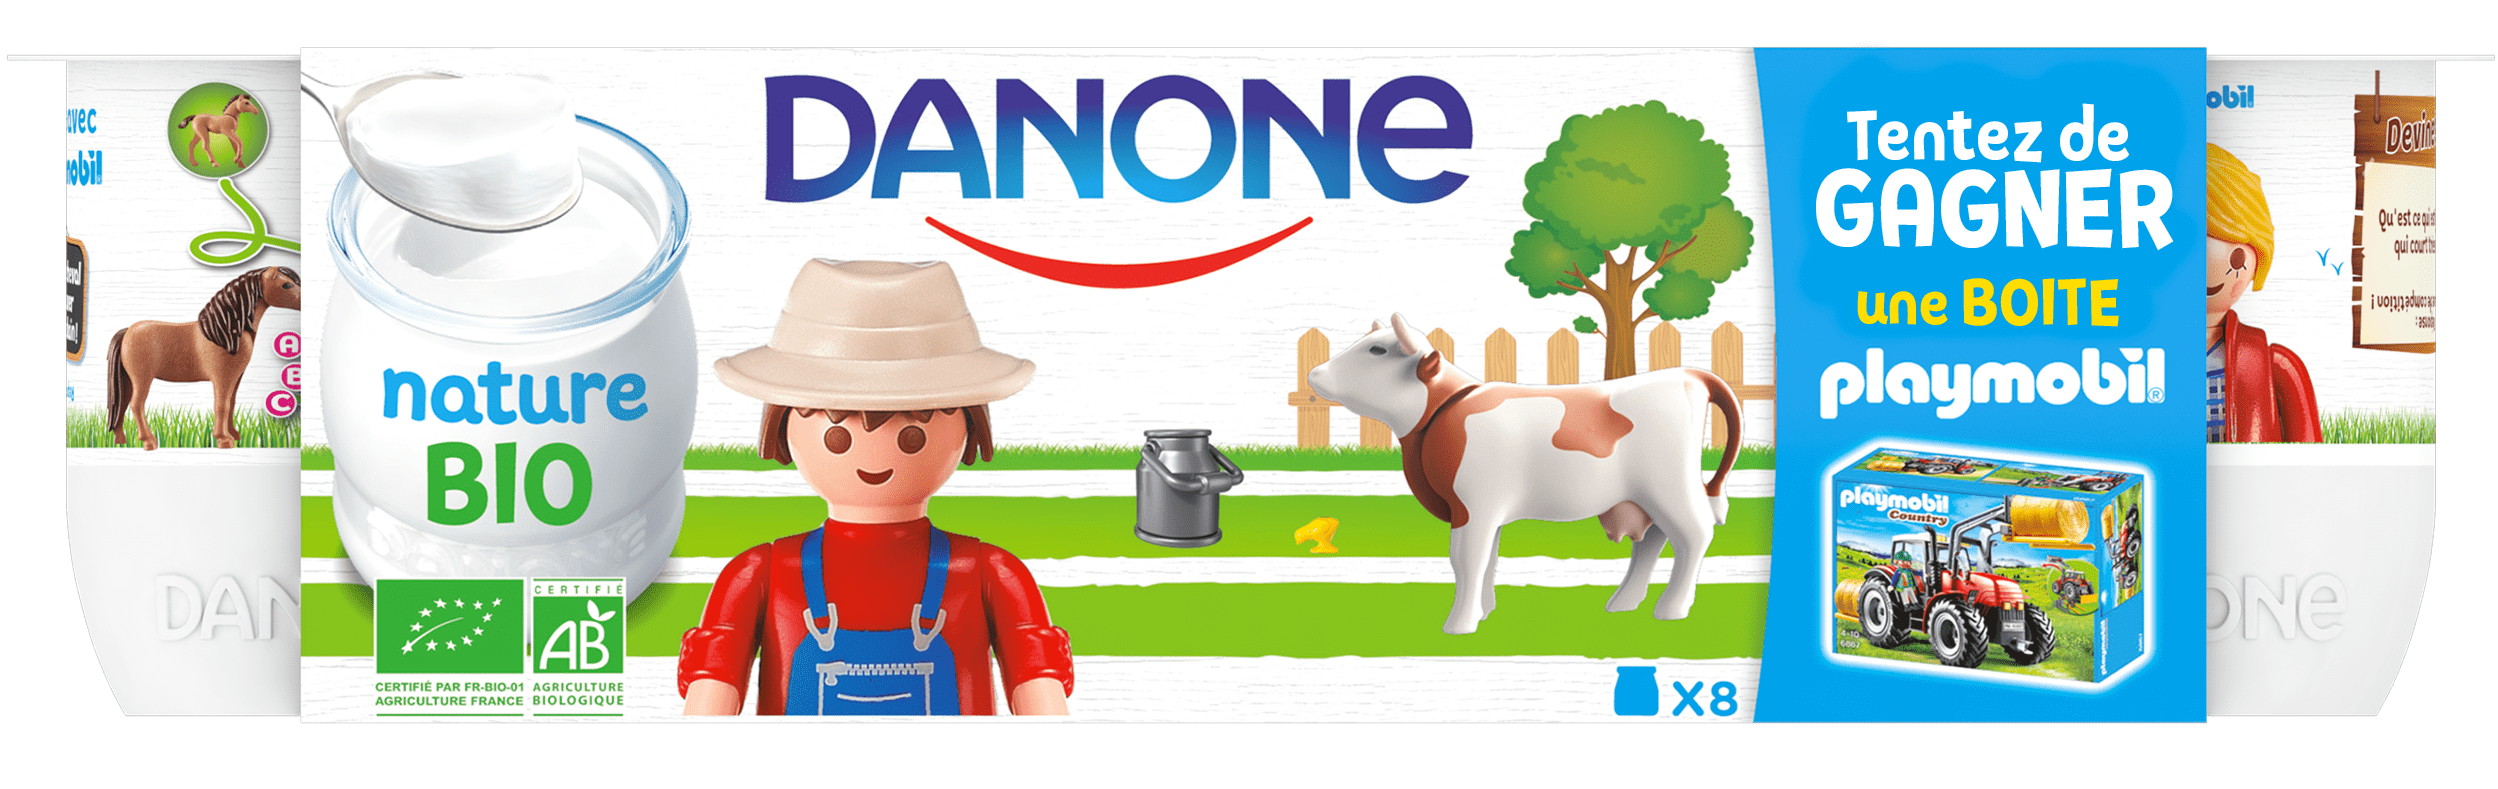 With Playmobil, Danone adds fantasy to the quest for goodness!